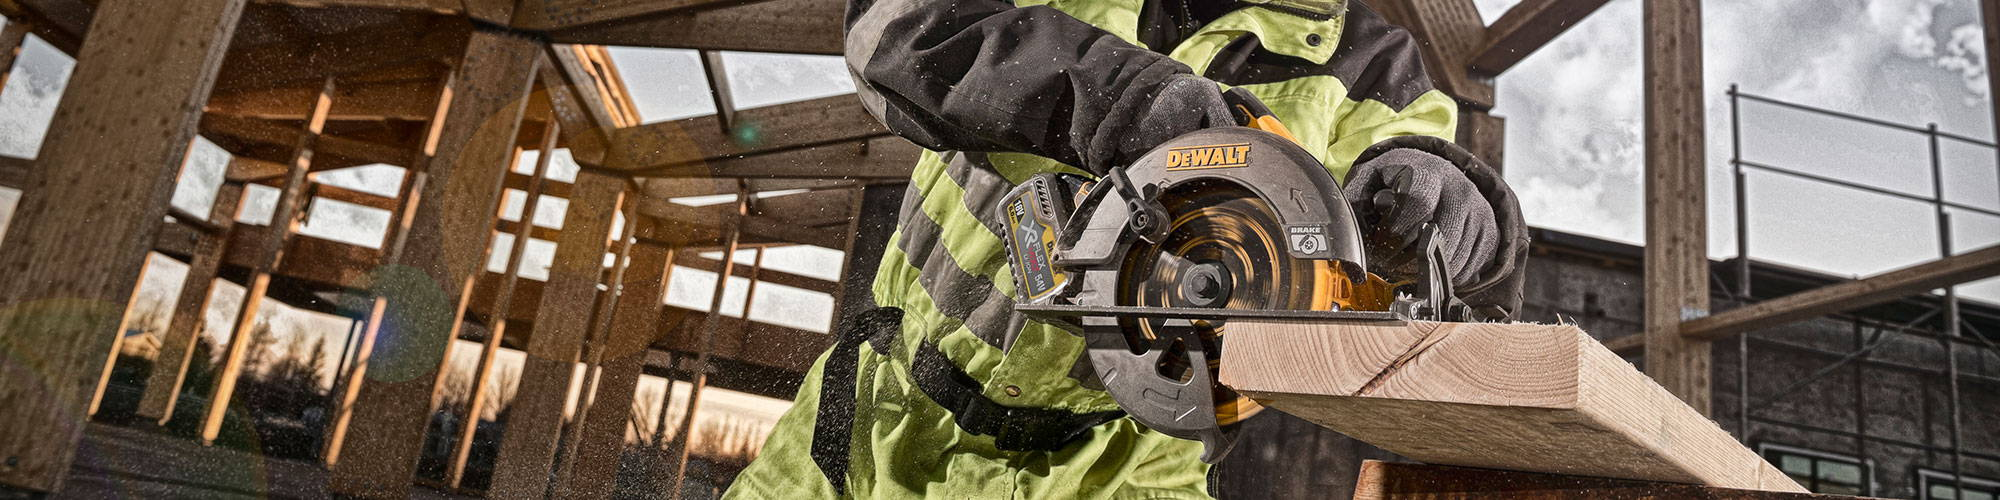 Dewalt DCS575 and DCS576 54V Circular Saws - Top 5 Things you need to Know